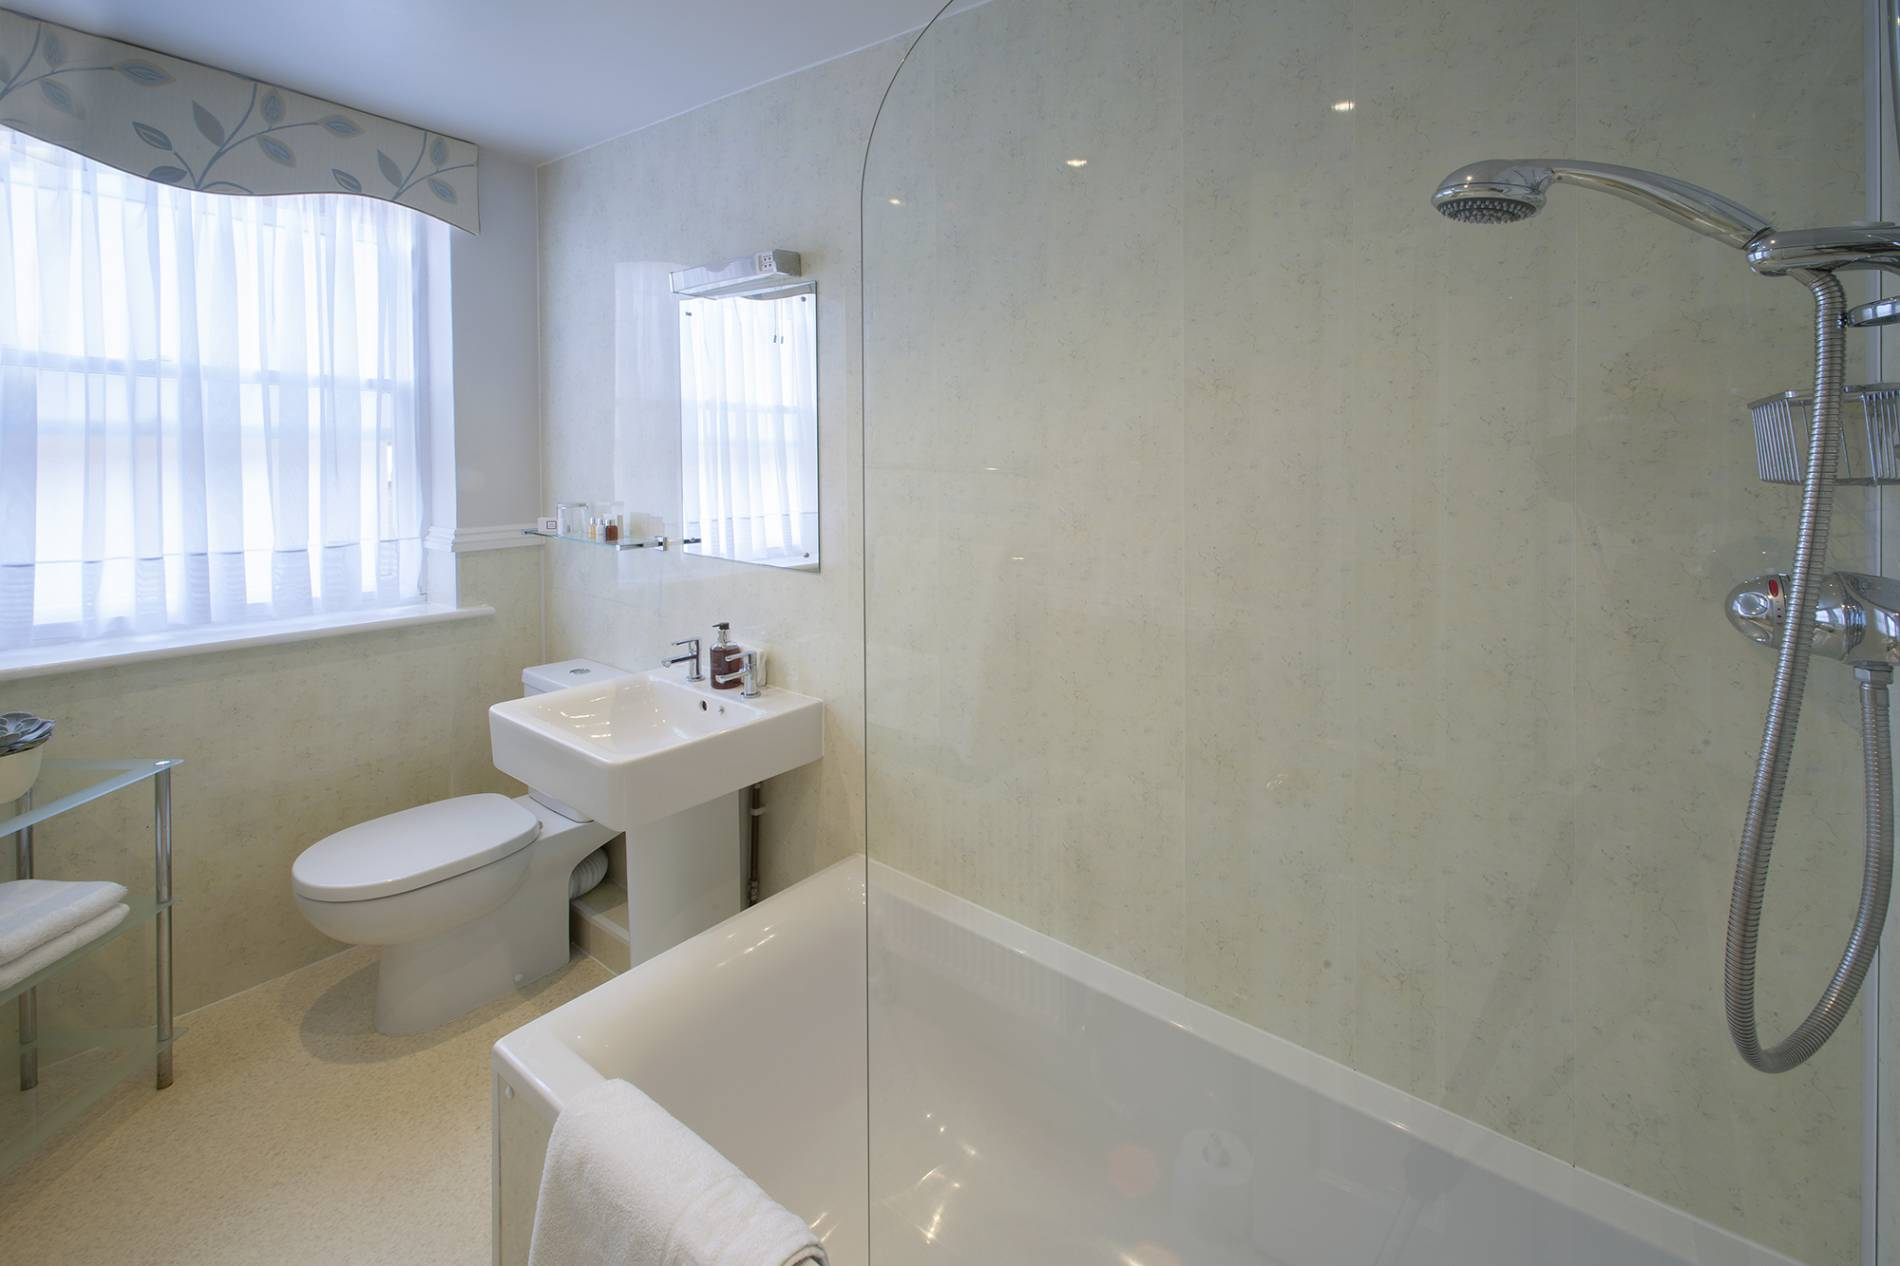 Yorke Lodge B&B Canterbury Kent bathroom